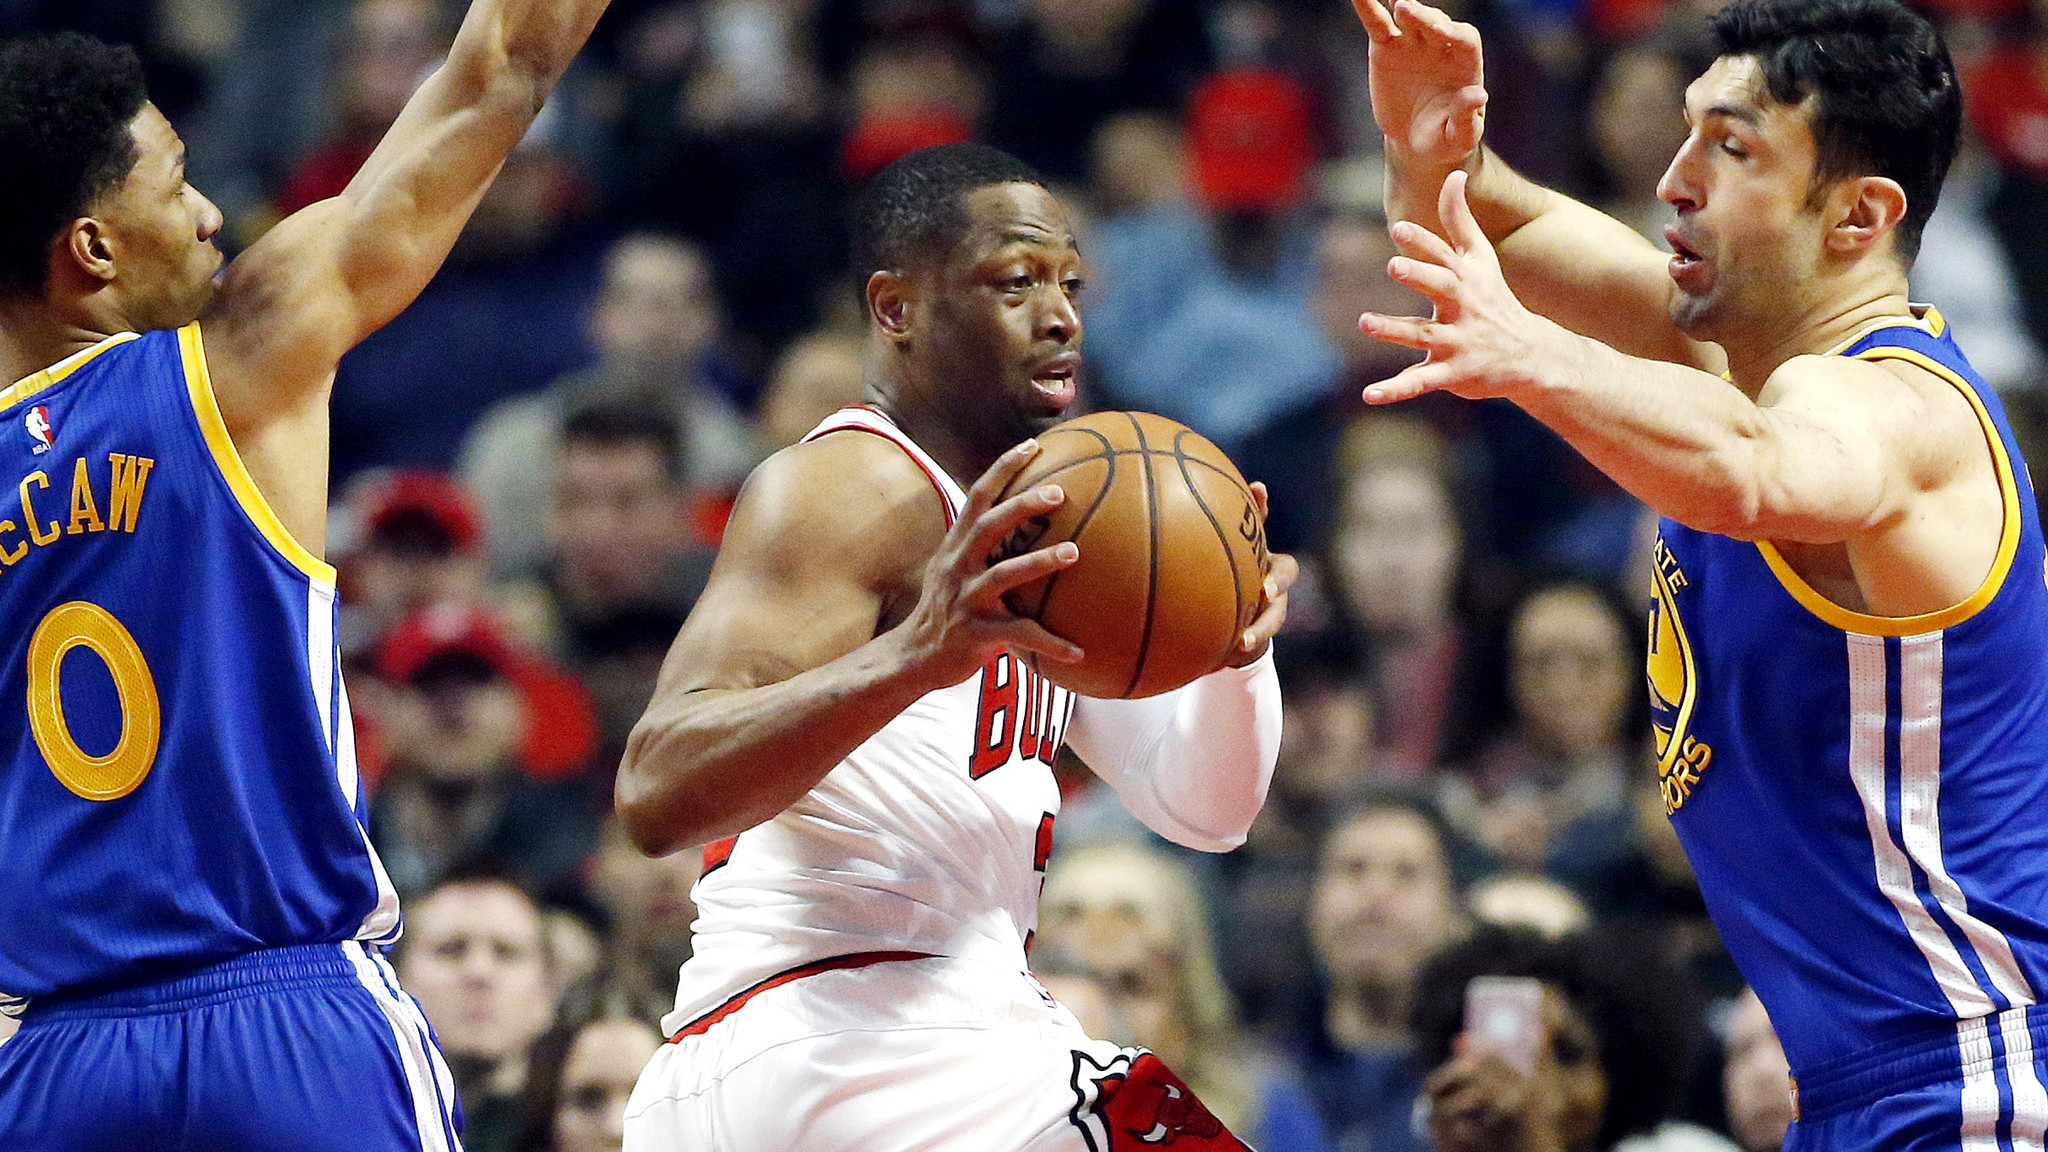 Dwyane Wade agrees to out with Chicago Bulls LA Times